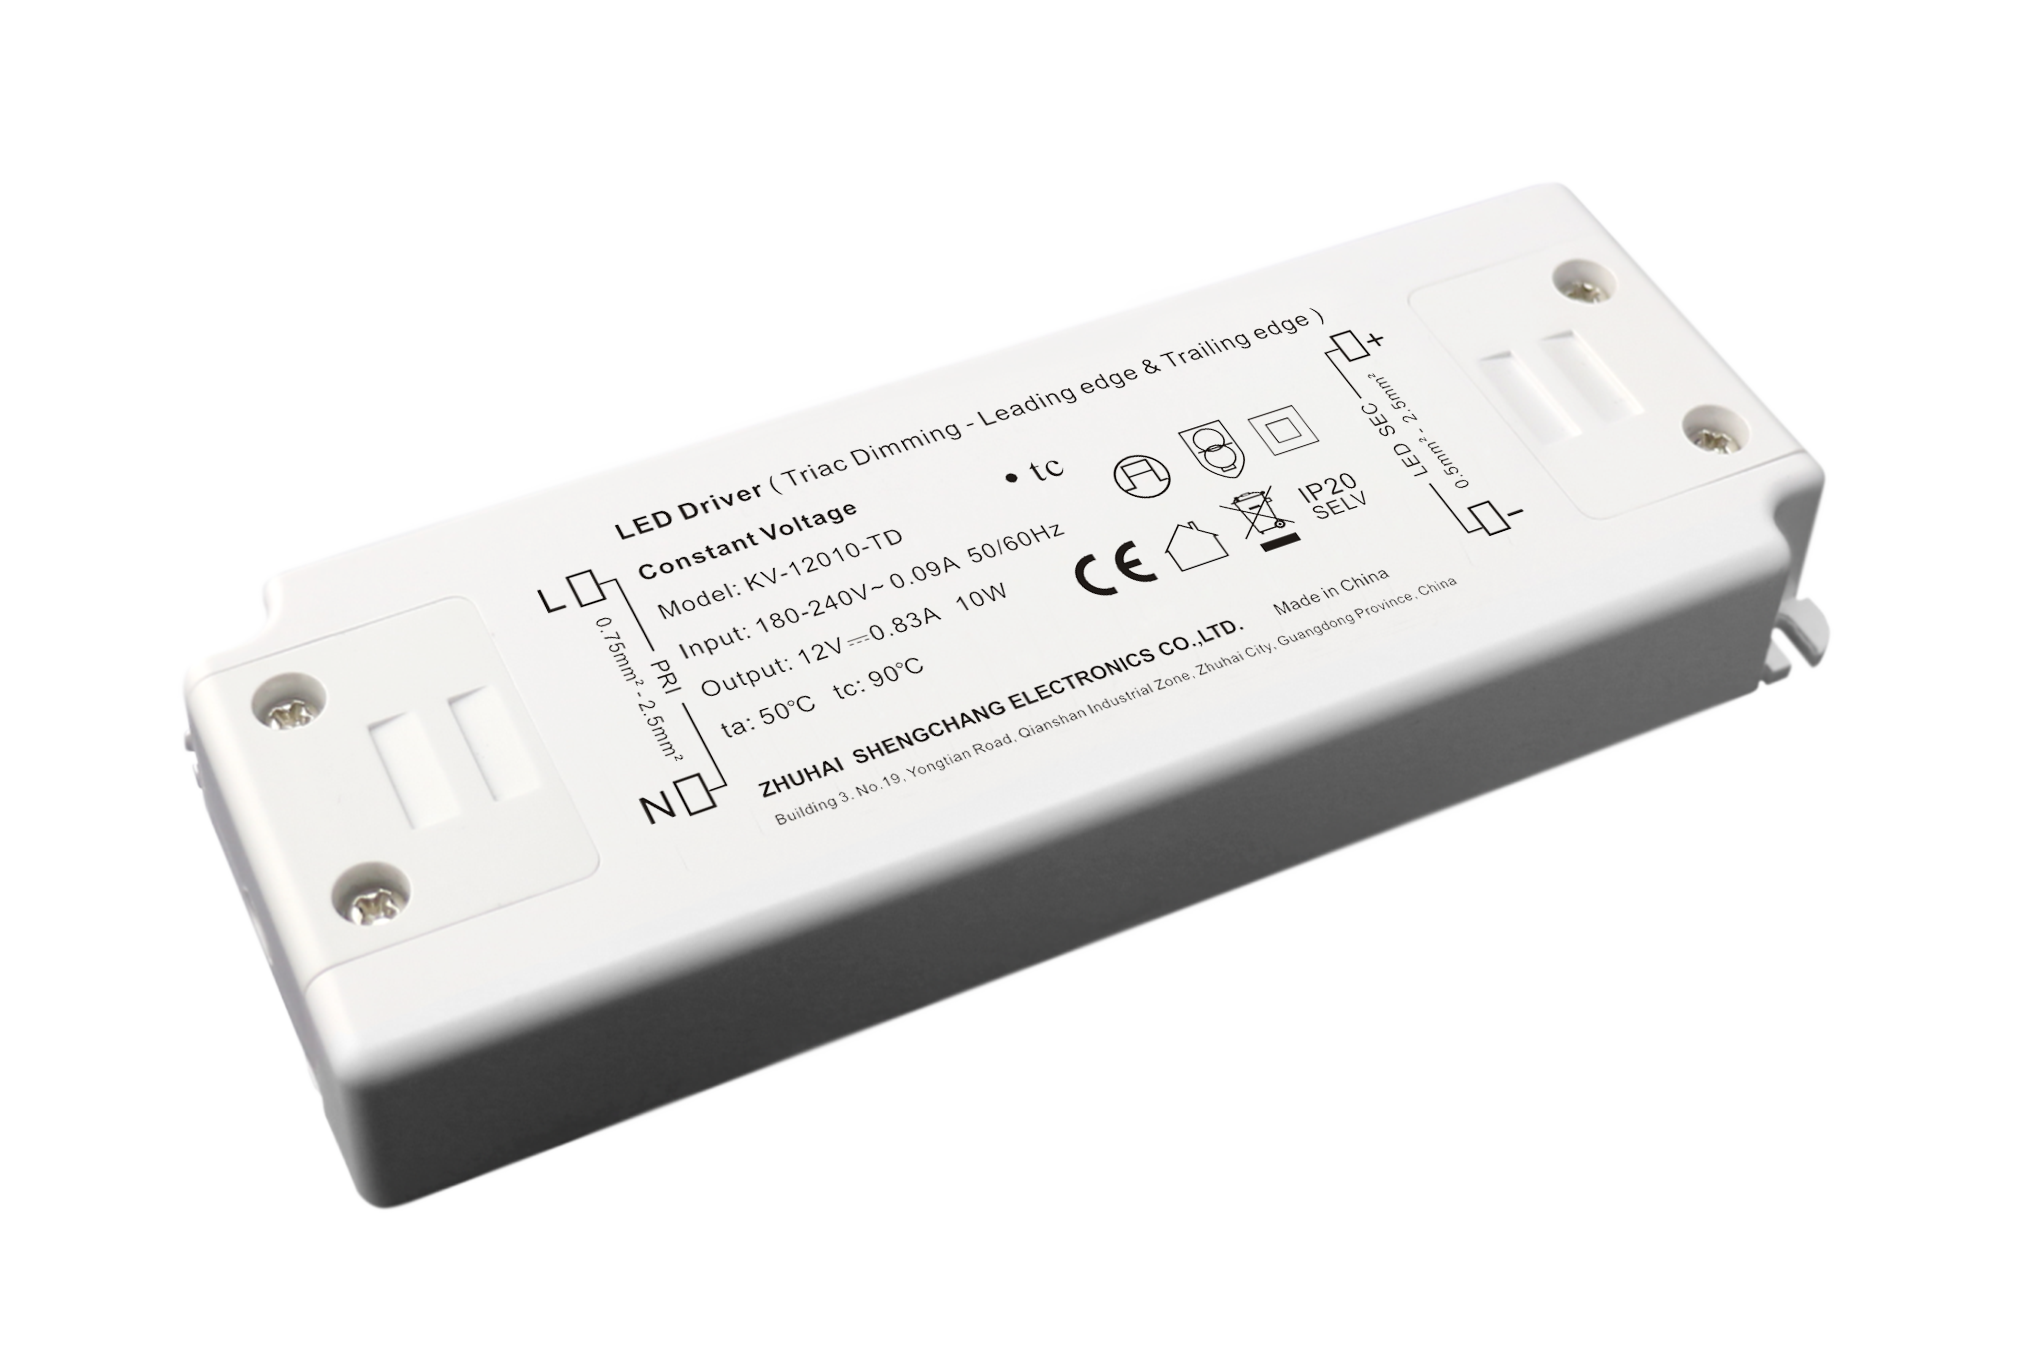 220VAC KV series 10W constant voltage triac LED driver